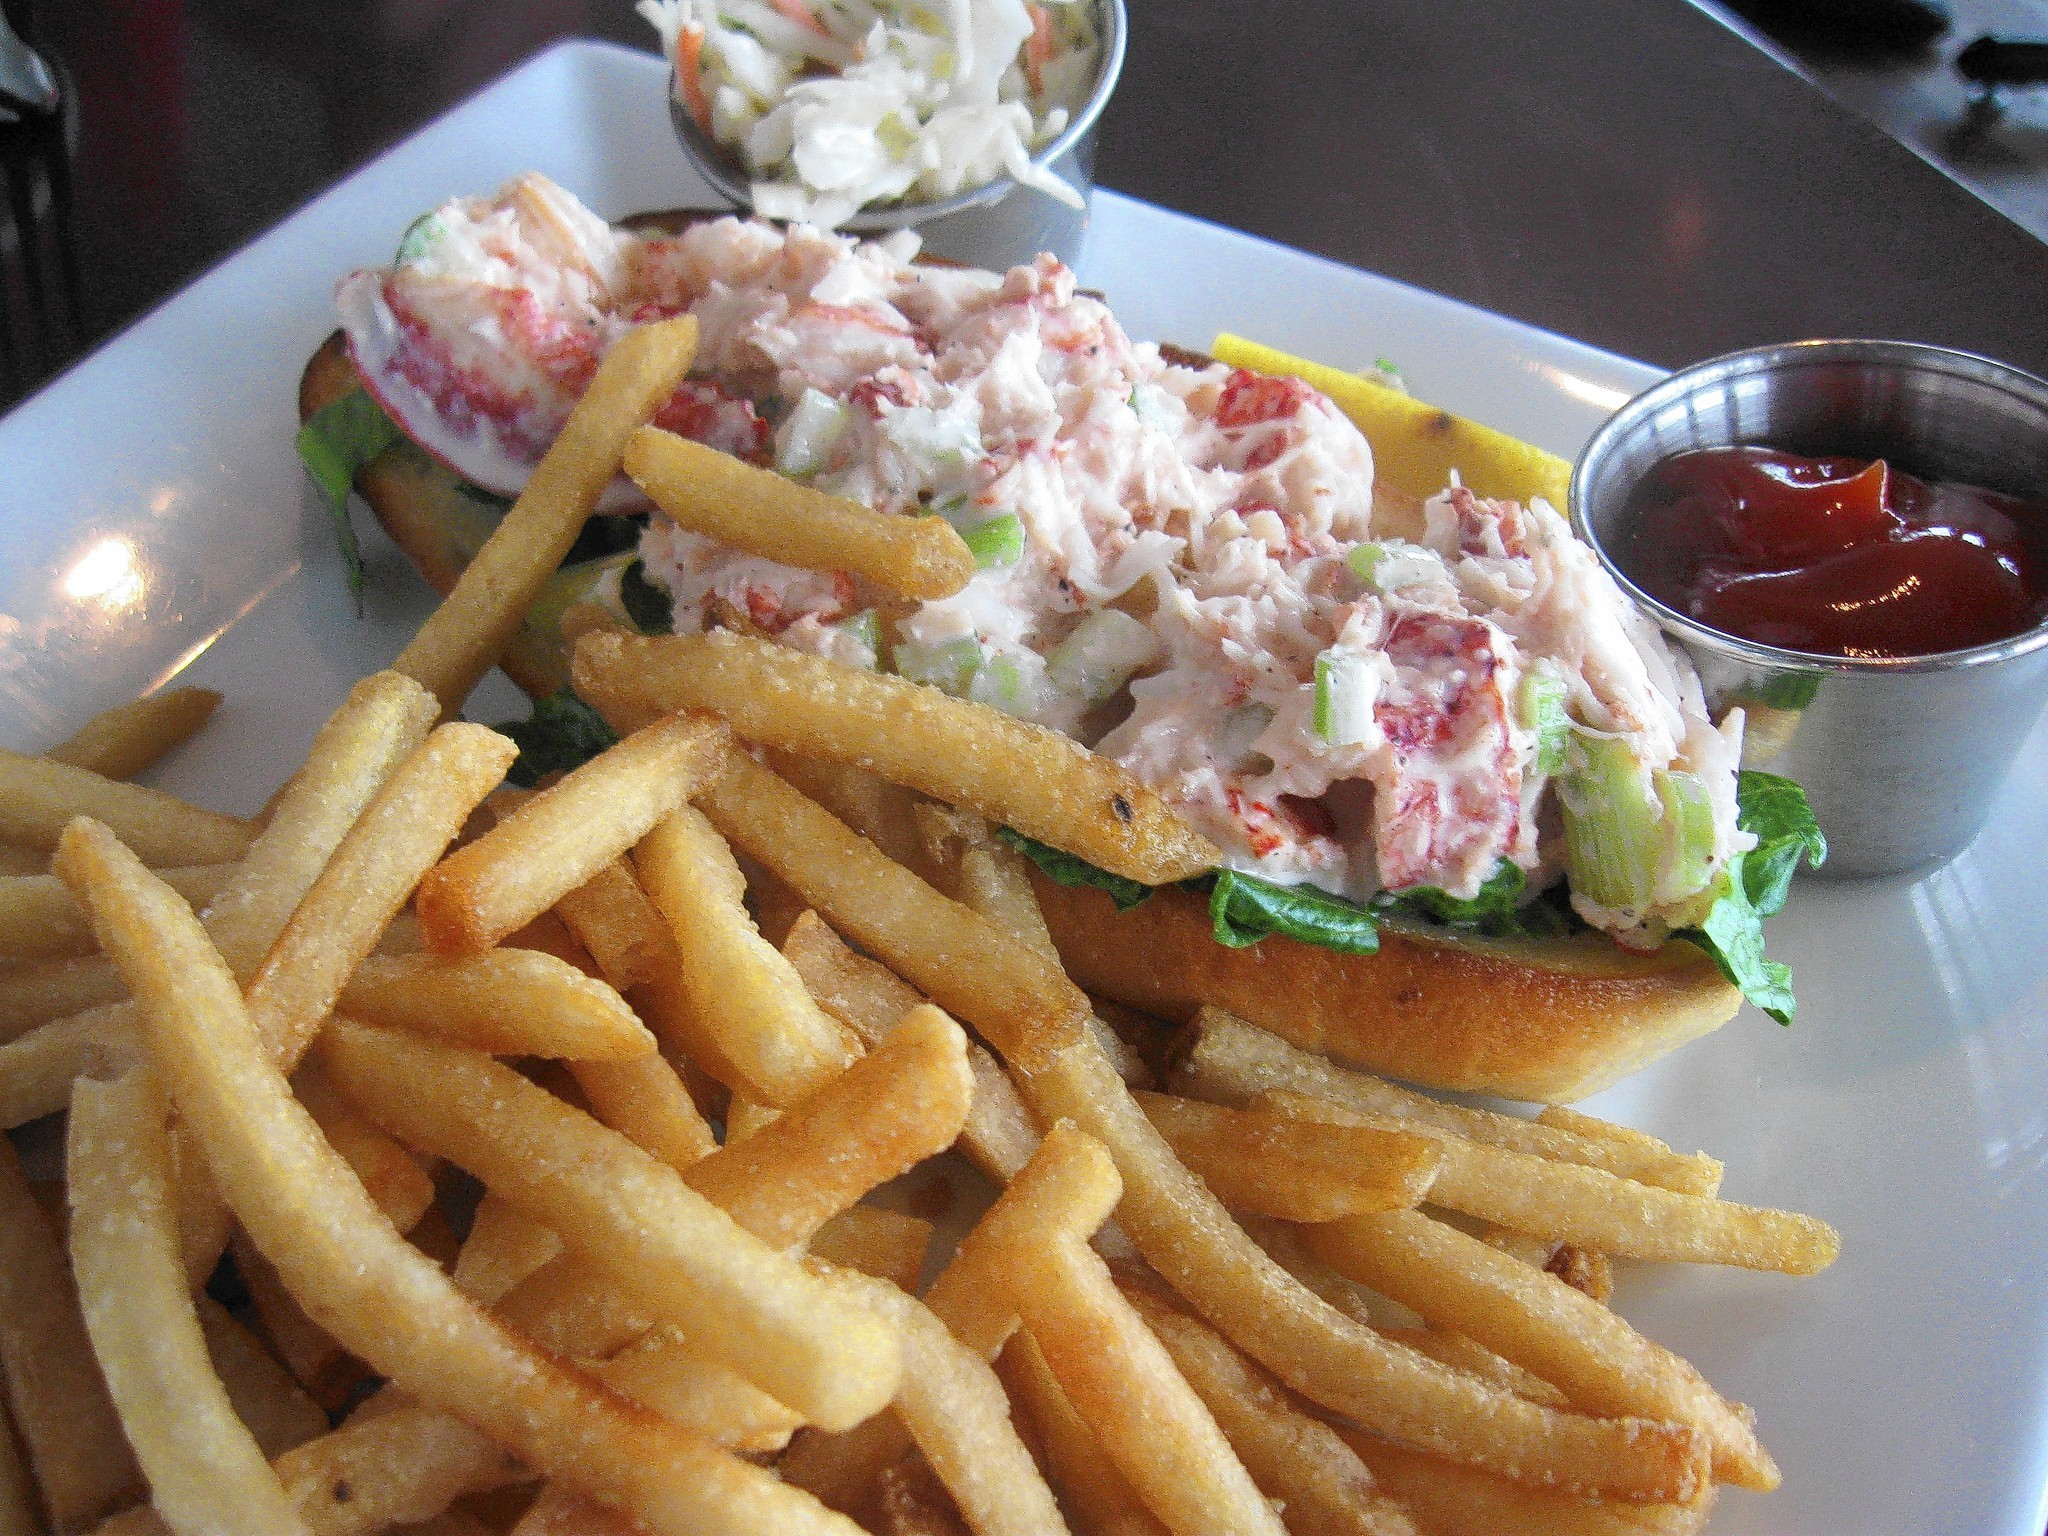 The fork-and-knife lobster roll is an open-faced affair lots of lobster and chopped celery lightly bound in mayonnaise. Information here.